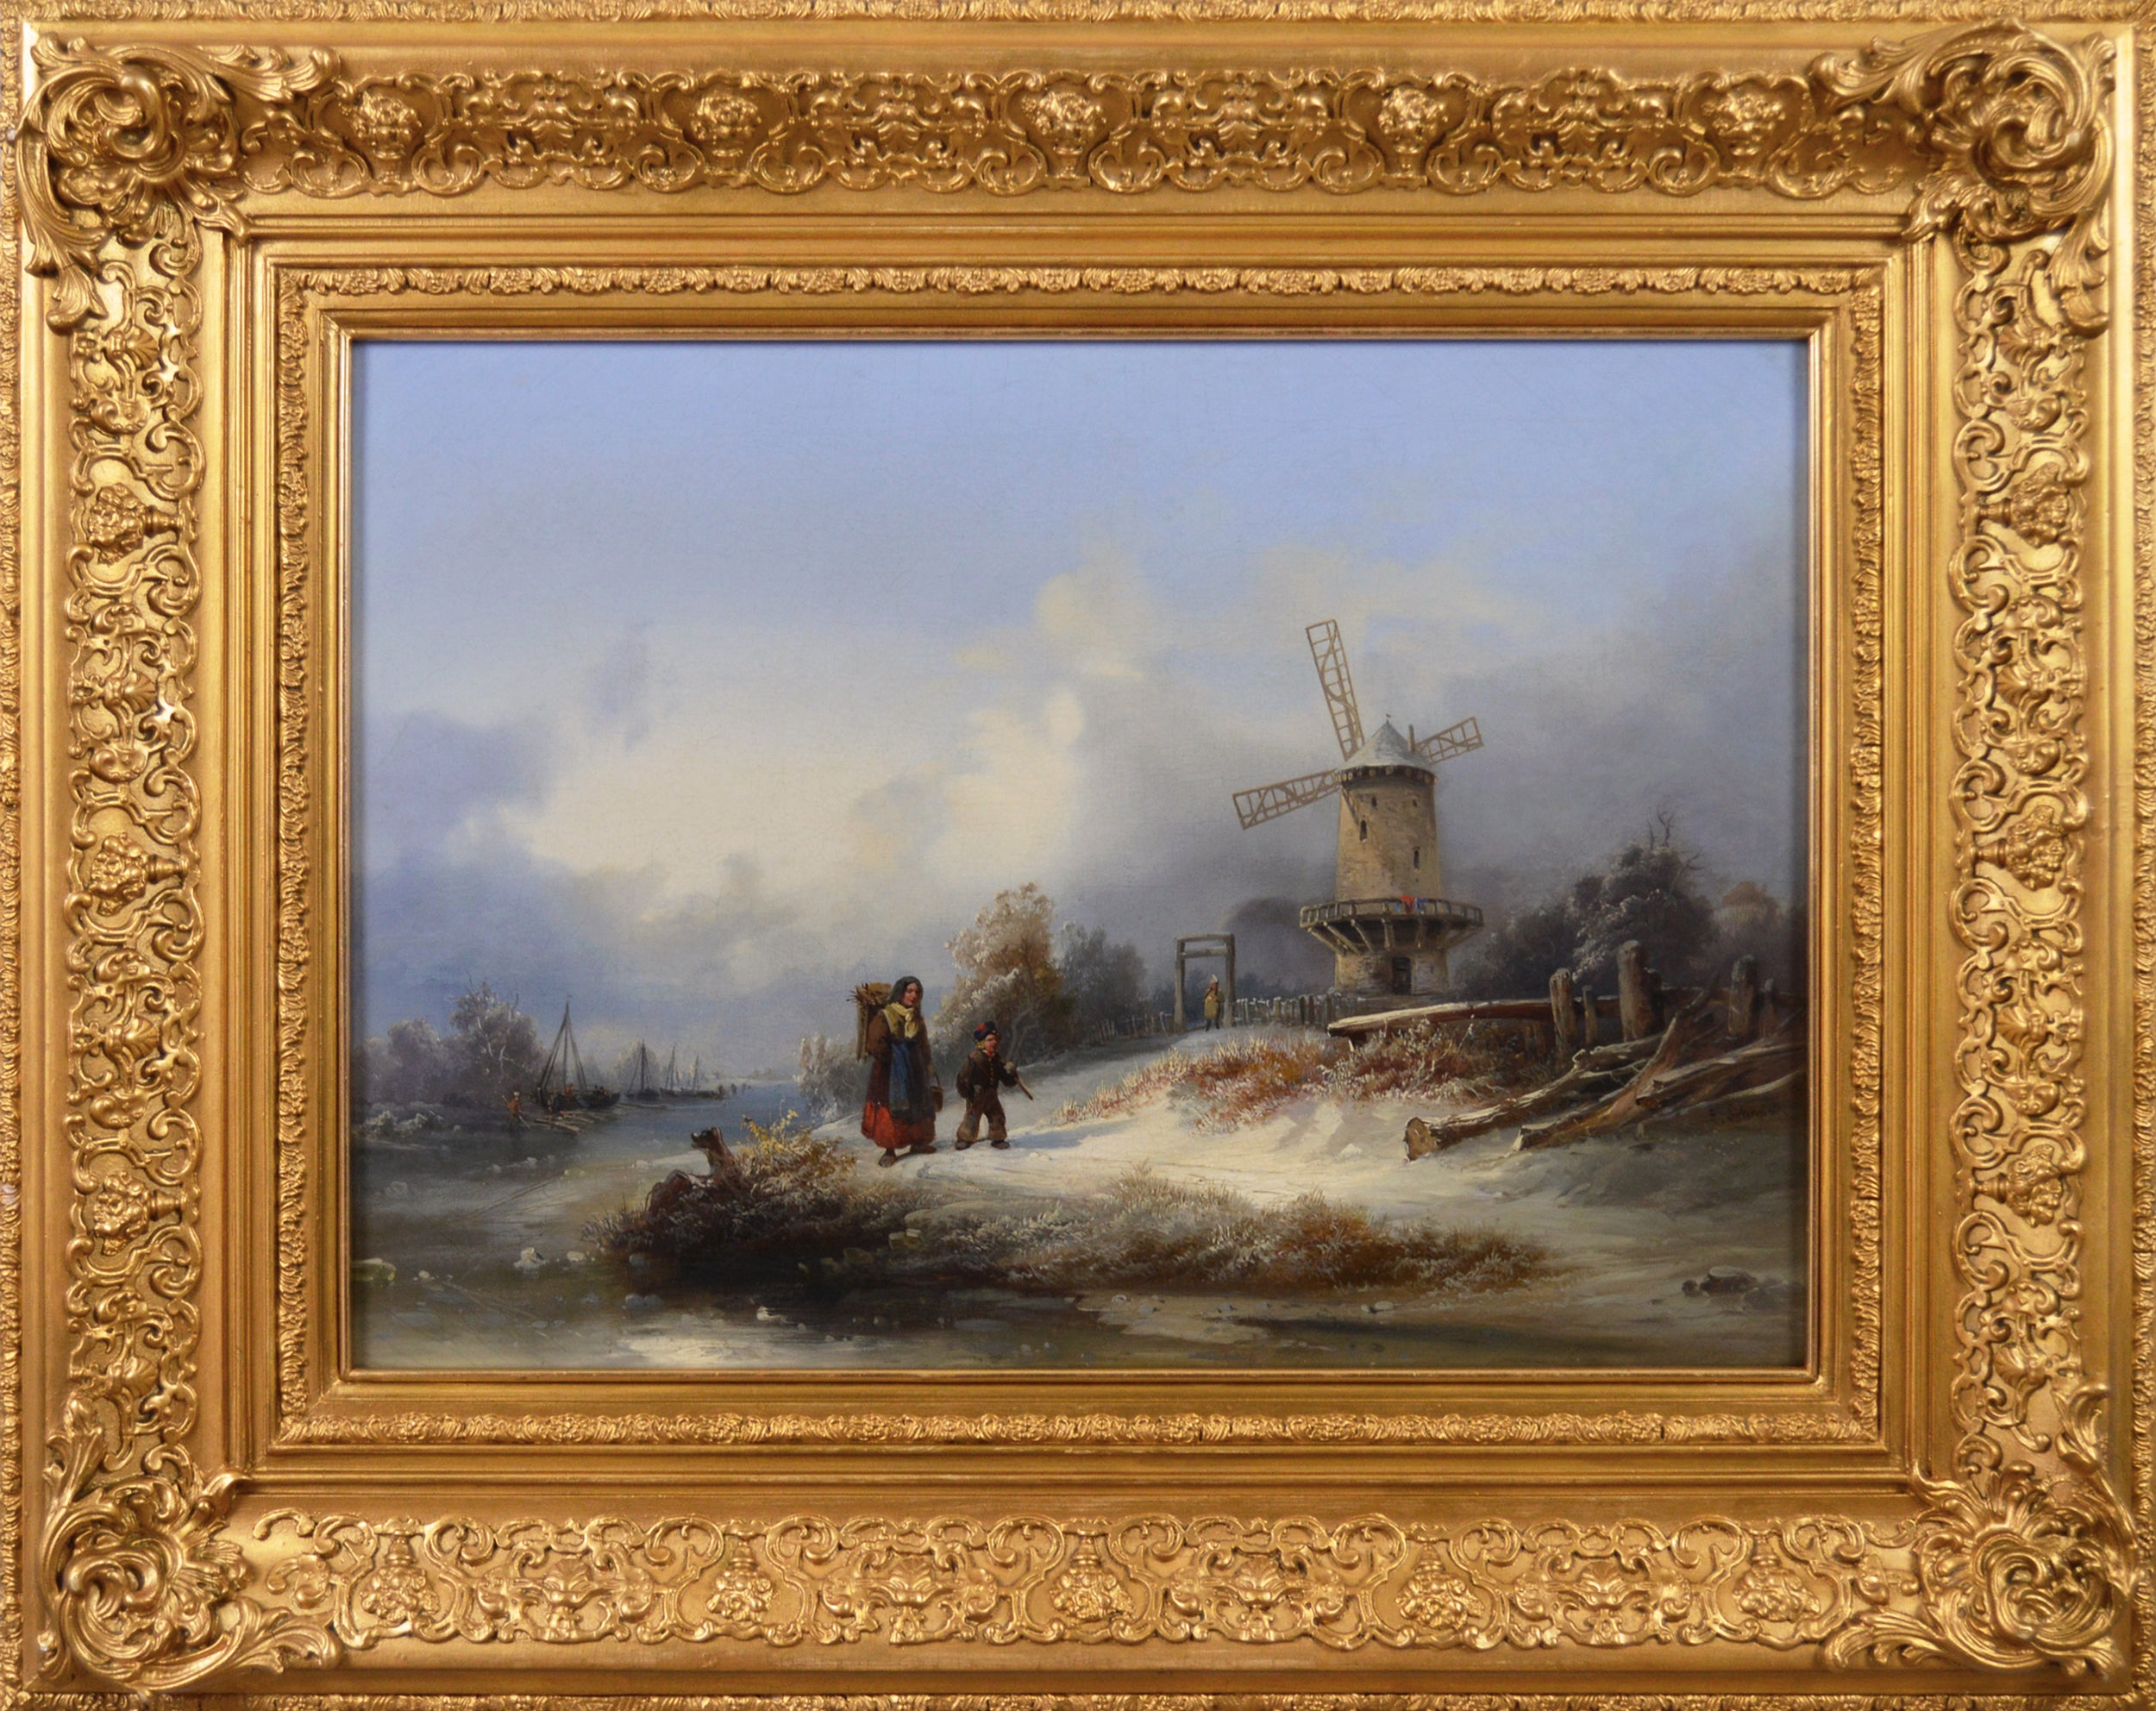 19th Century winter landscape oil painting of a windmill by a river